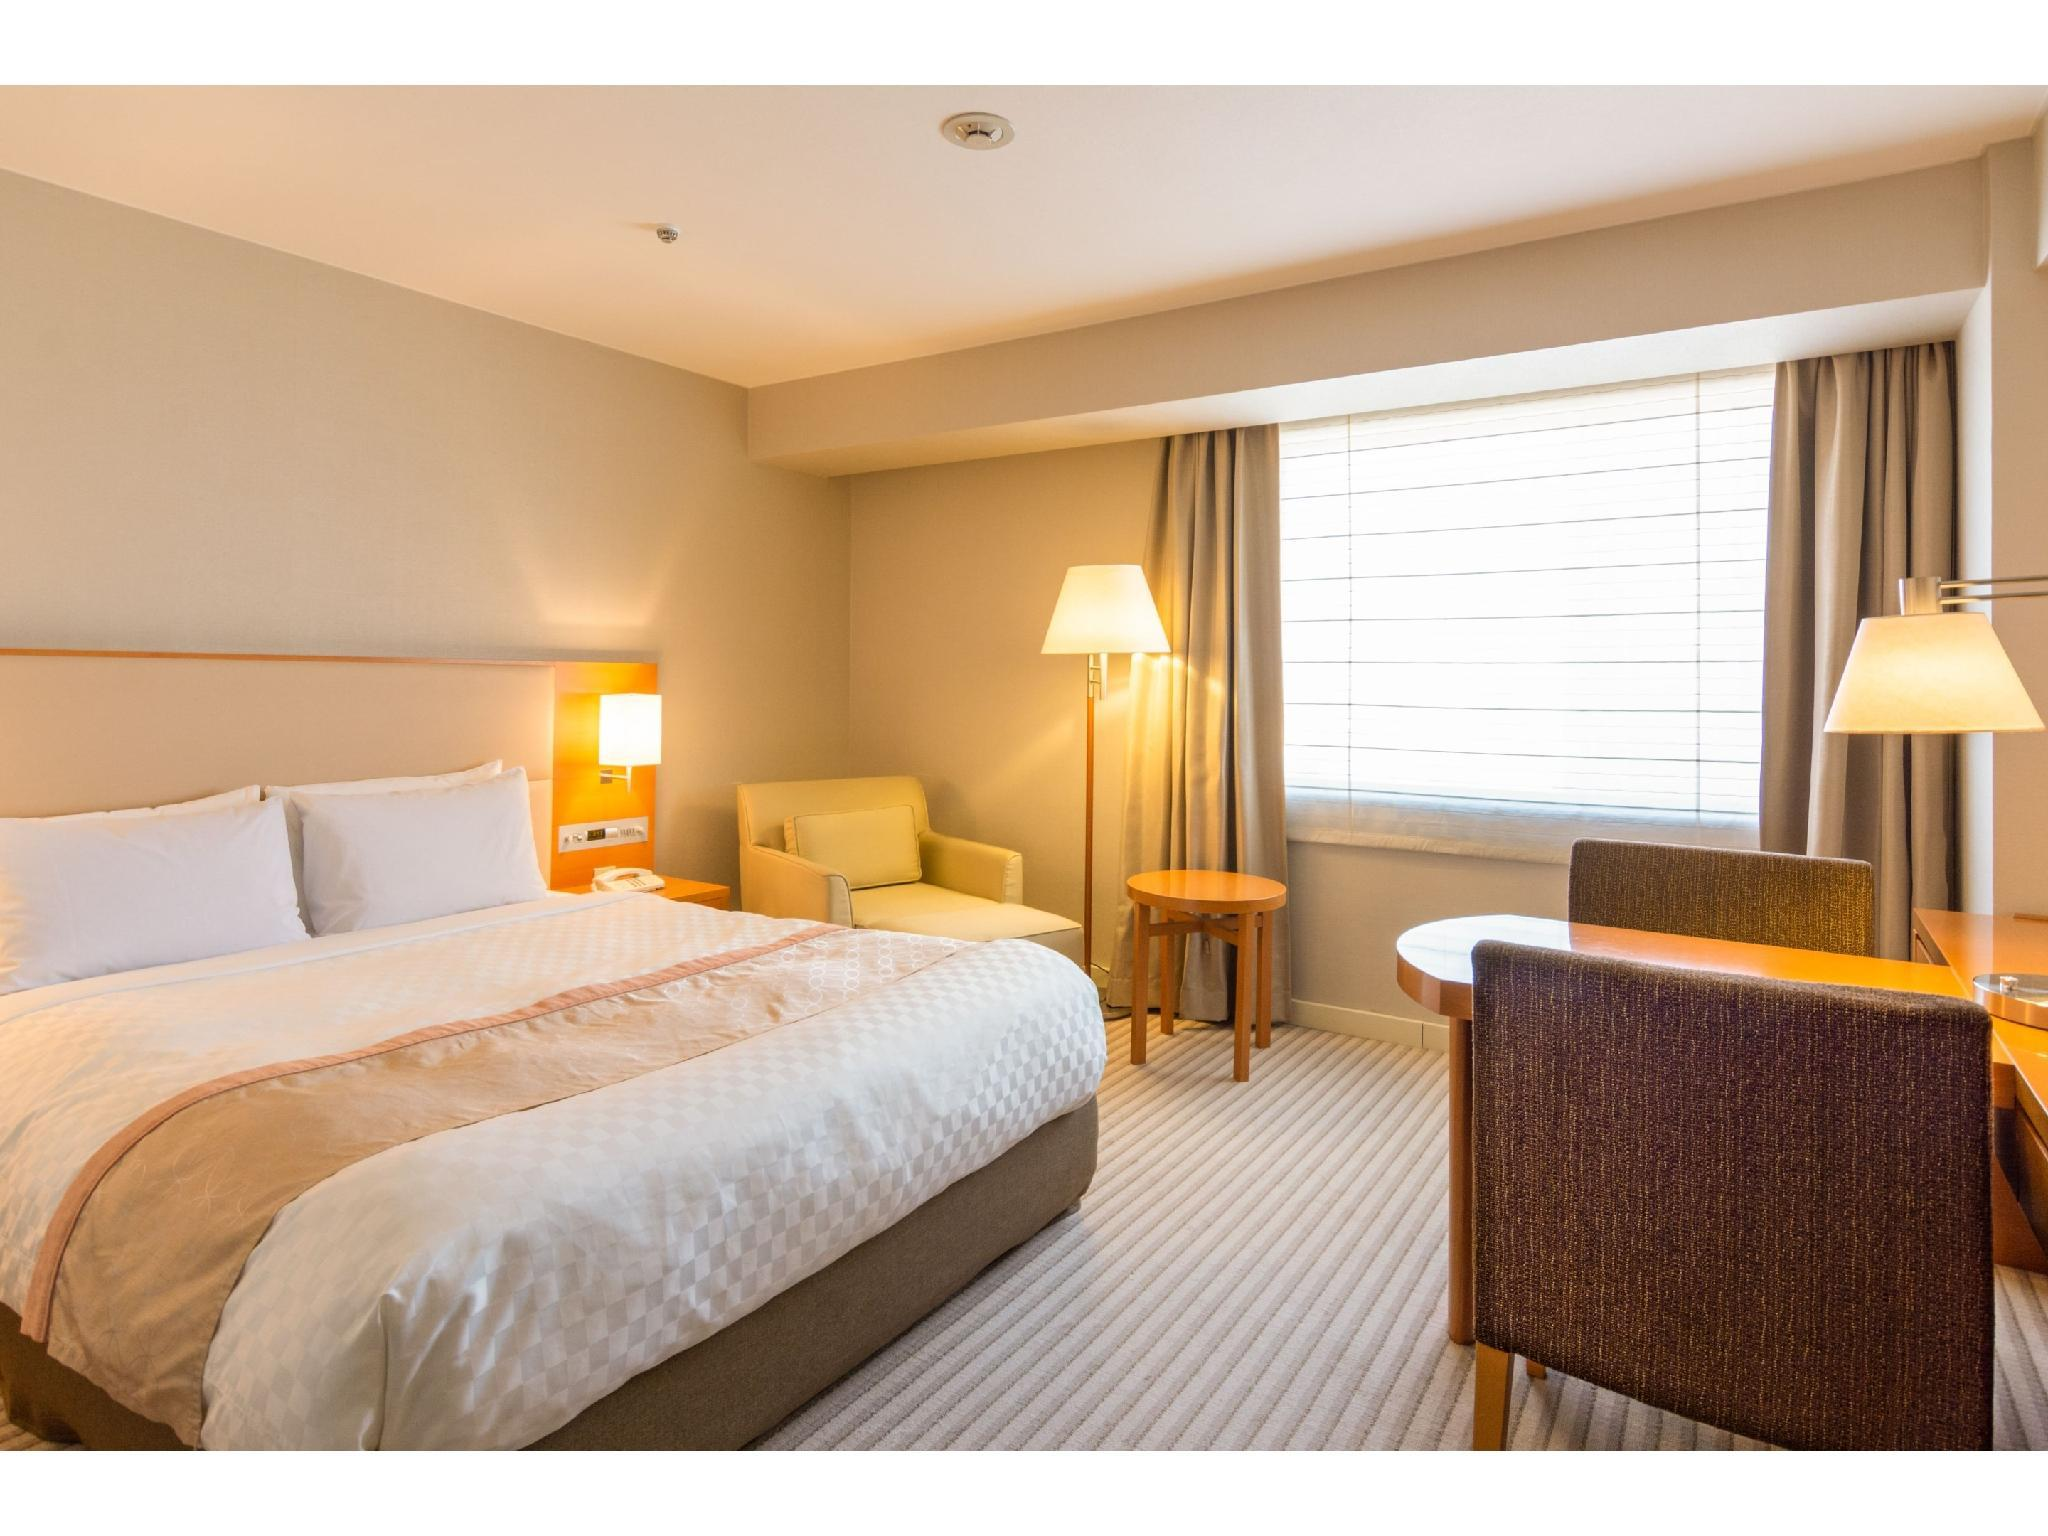 Premium floor Standard Double|25.4平米 (Standard Double Room (Premium Floor))